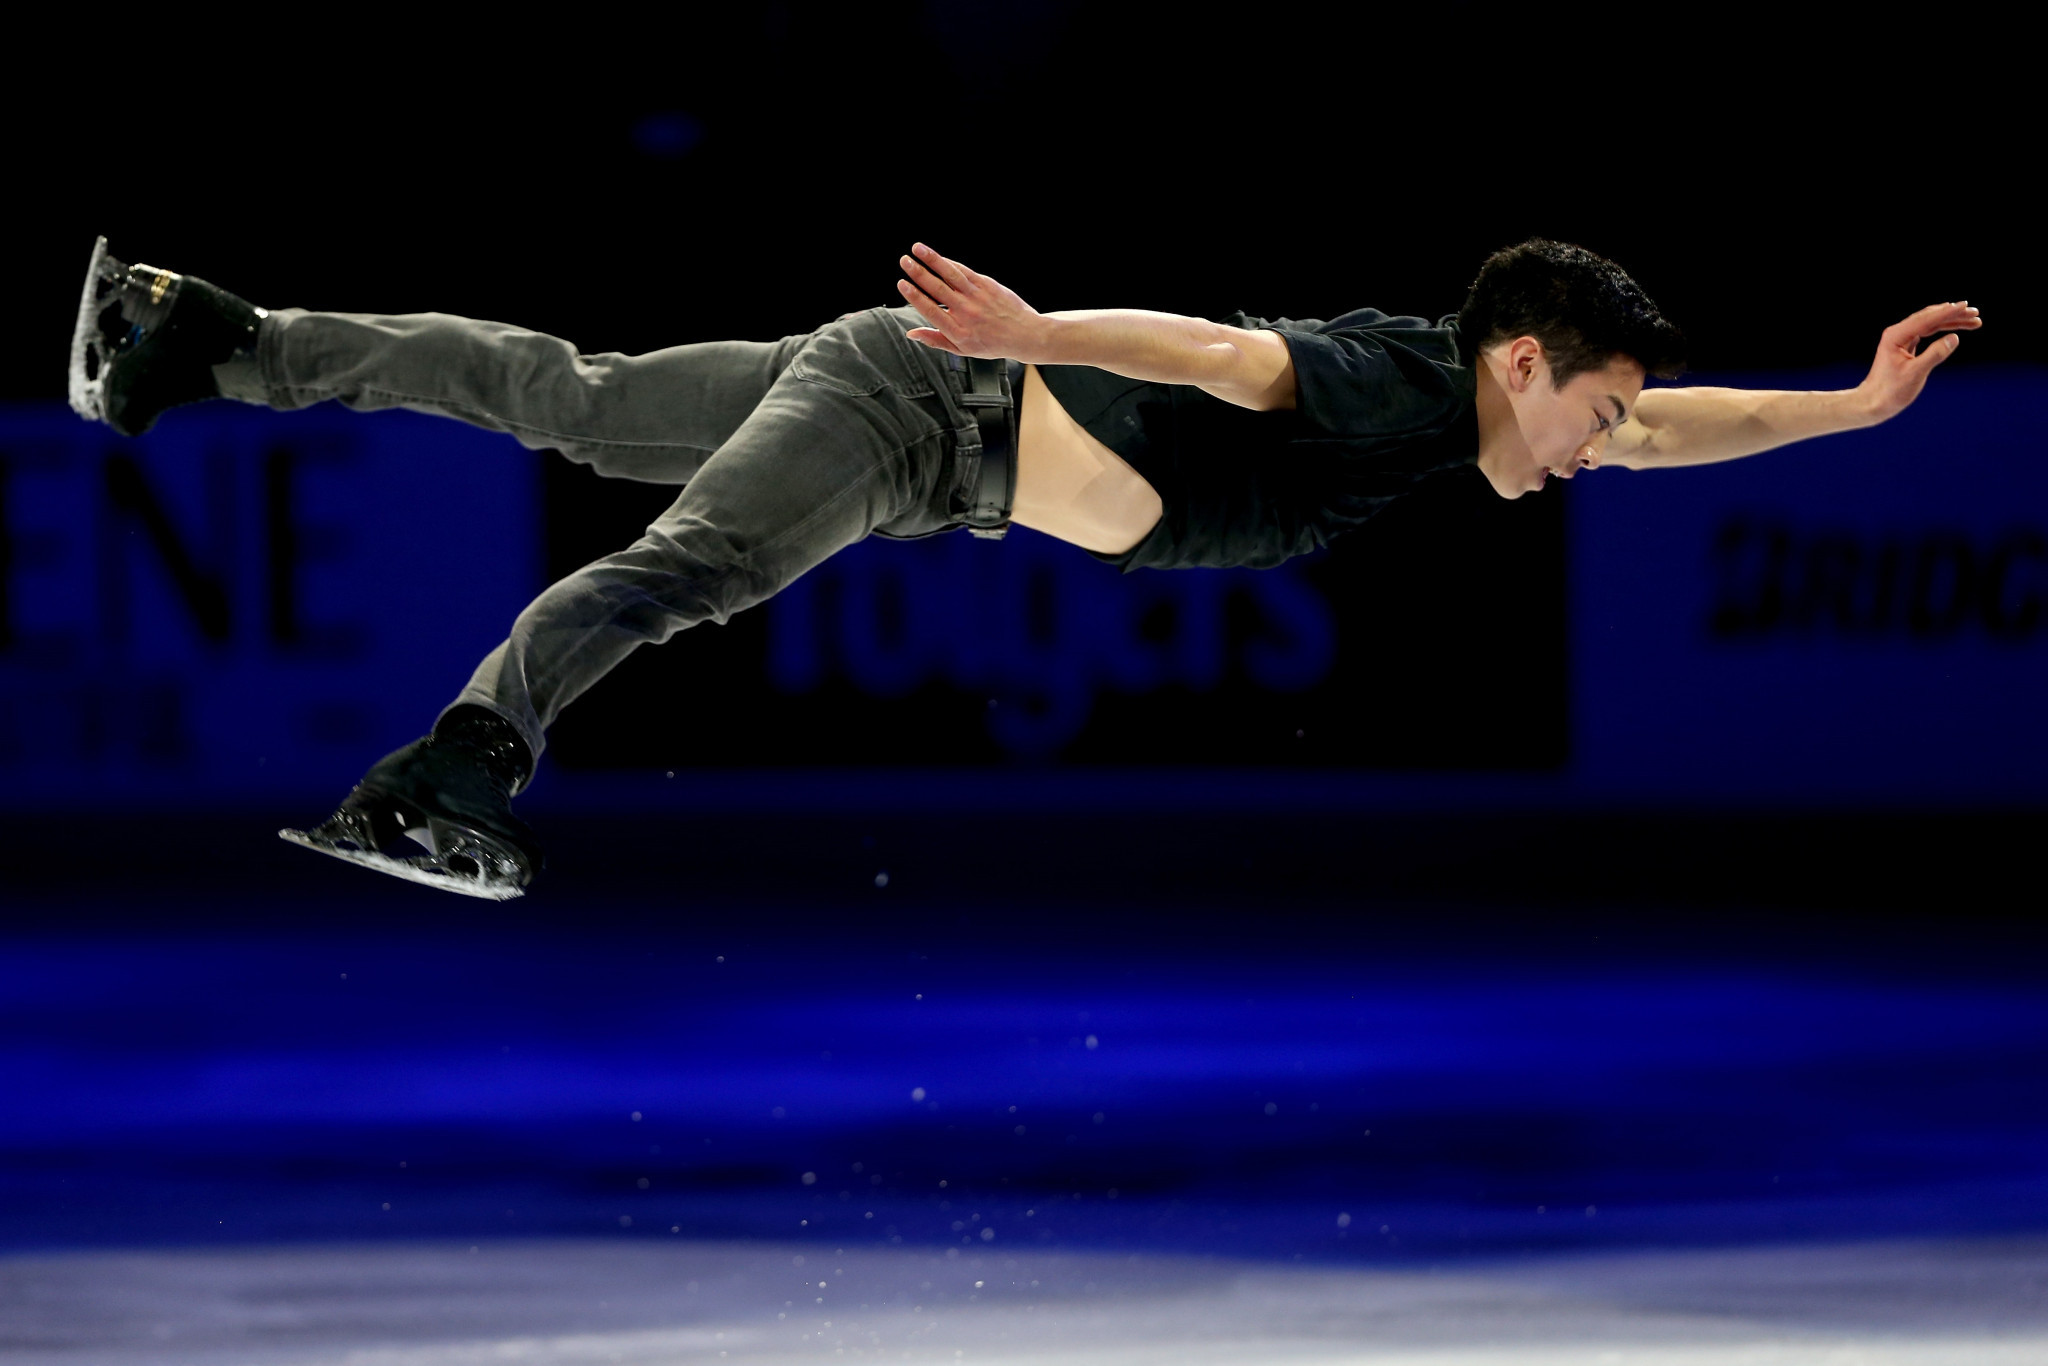 The ISU could move to limit quad jumps in free skating ©Getty Images